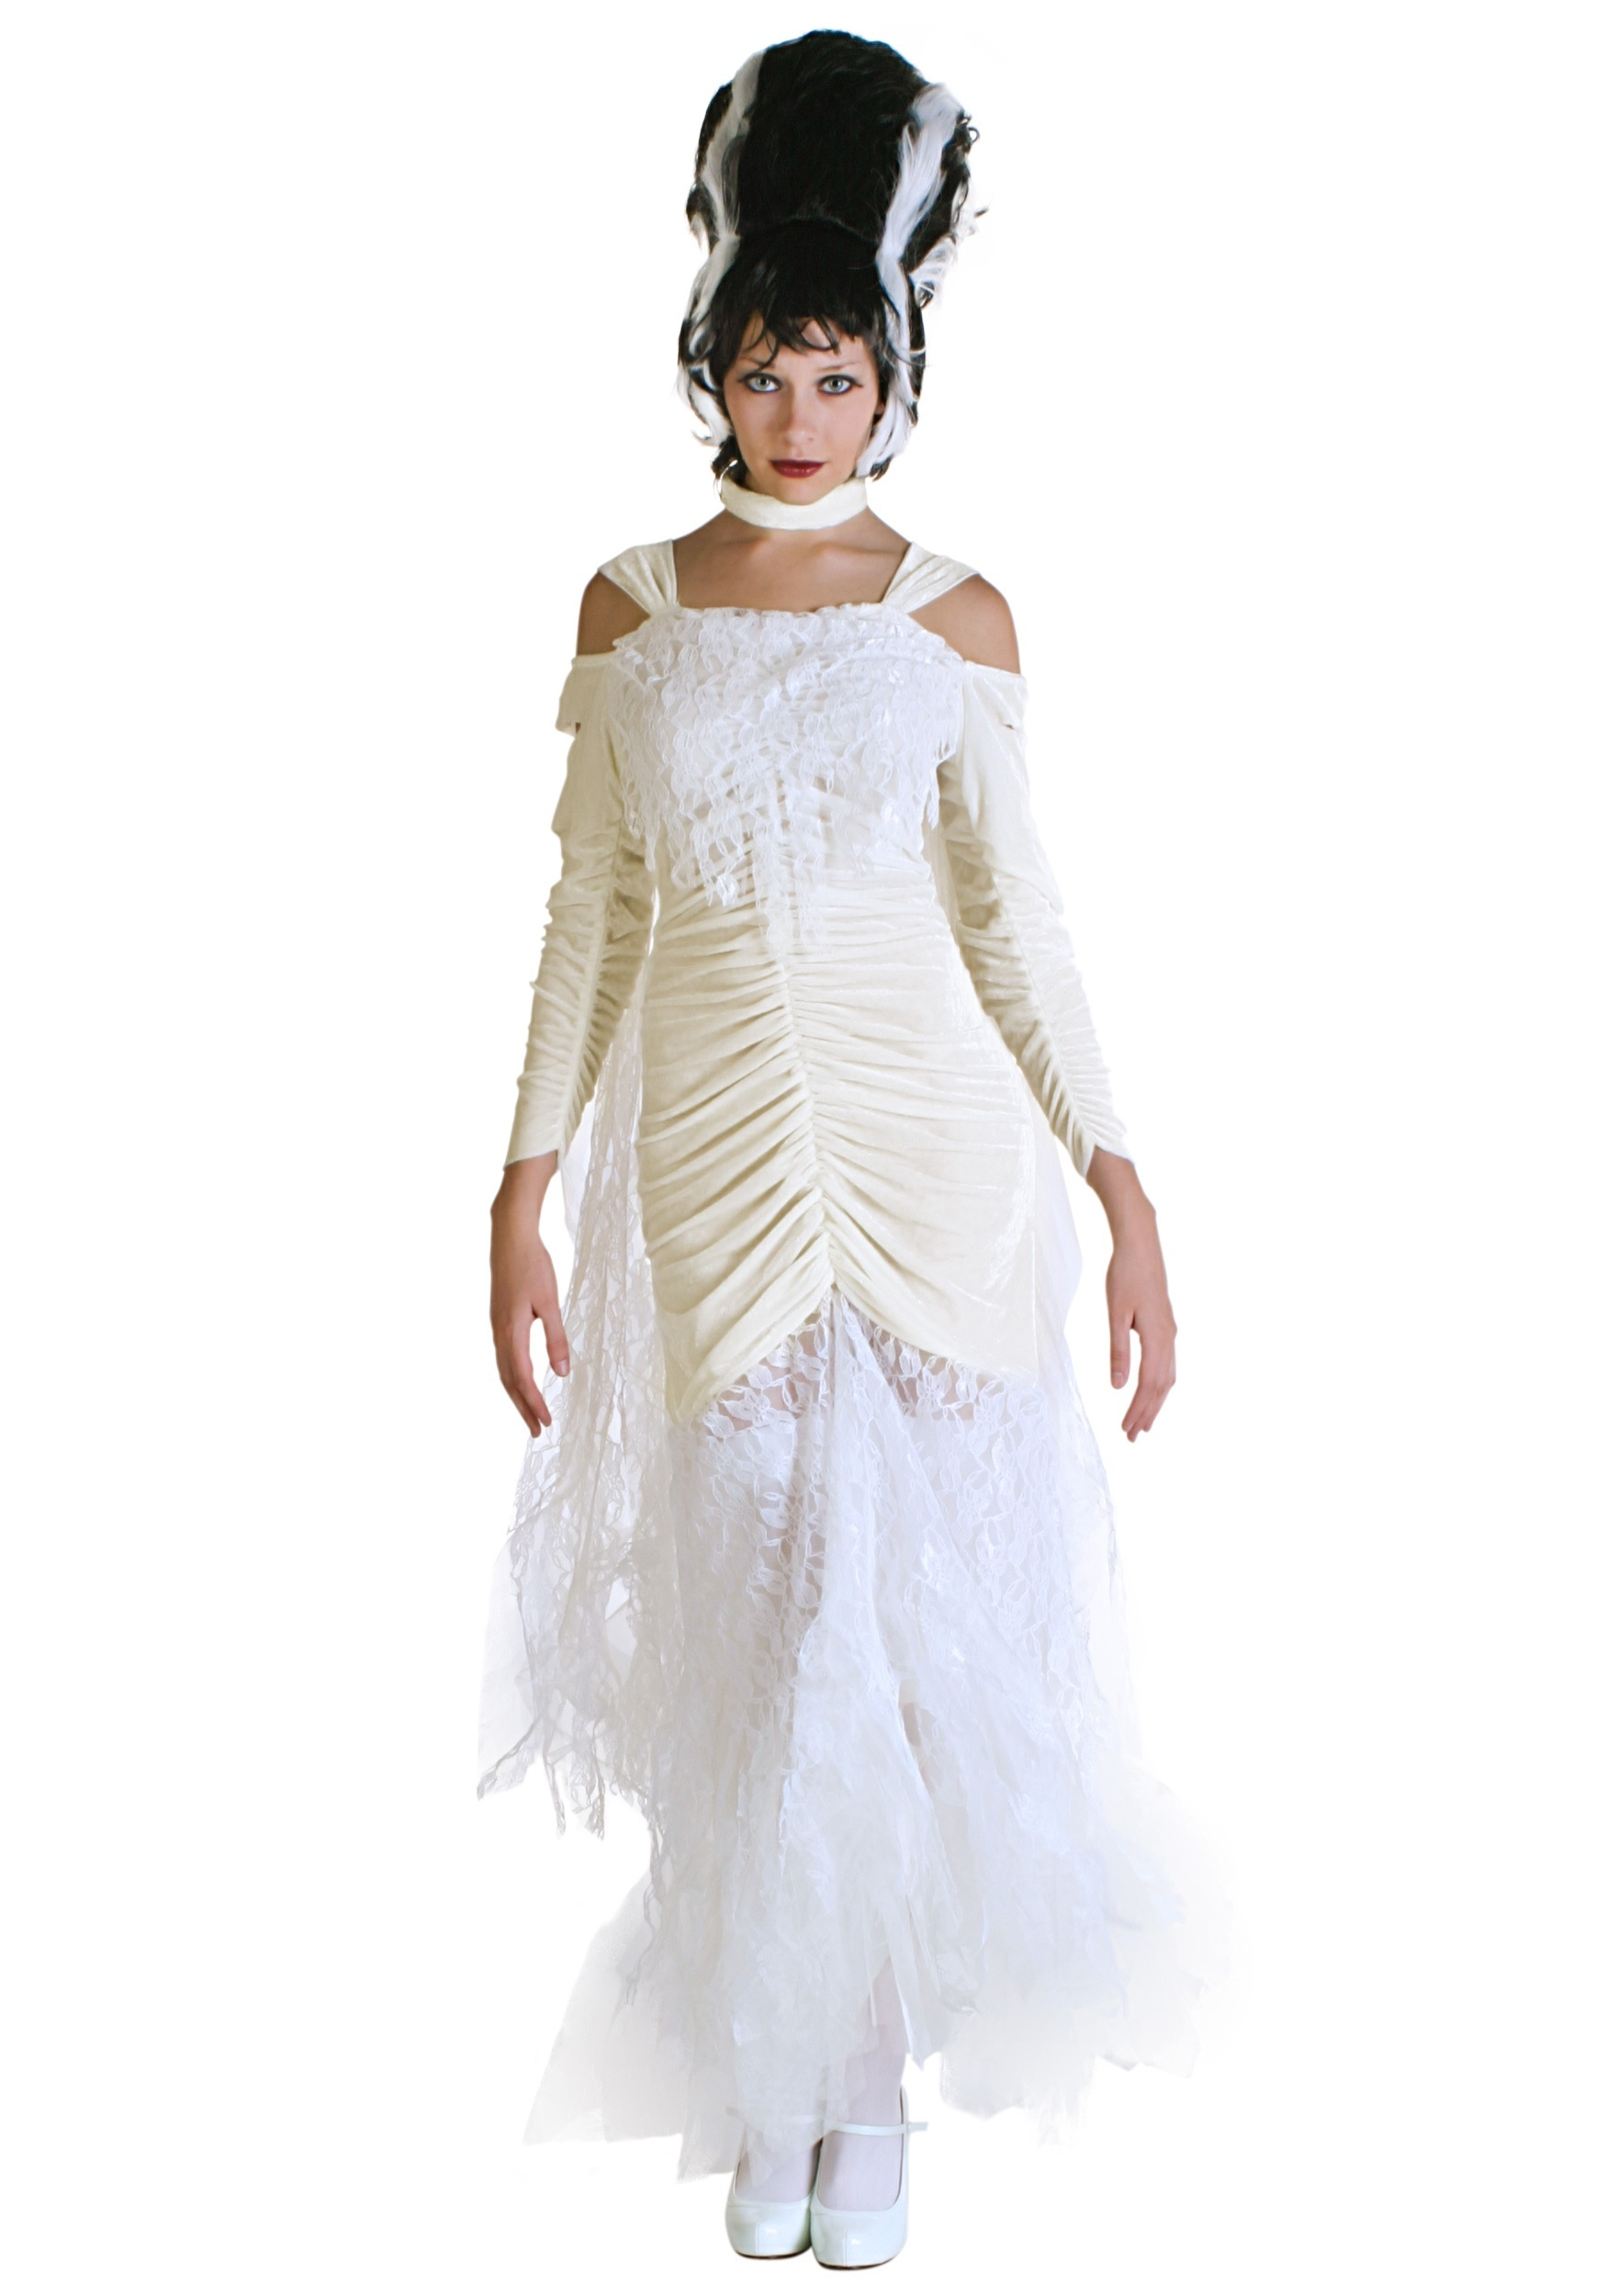 Plus Size Bride of Frankenstein Costume